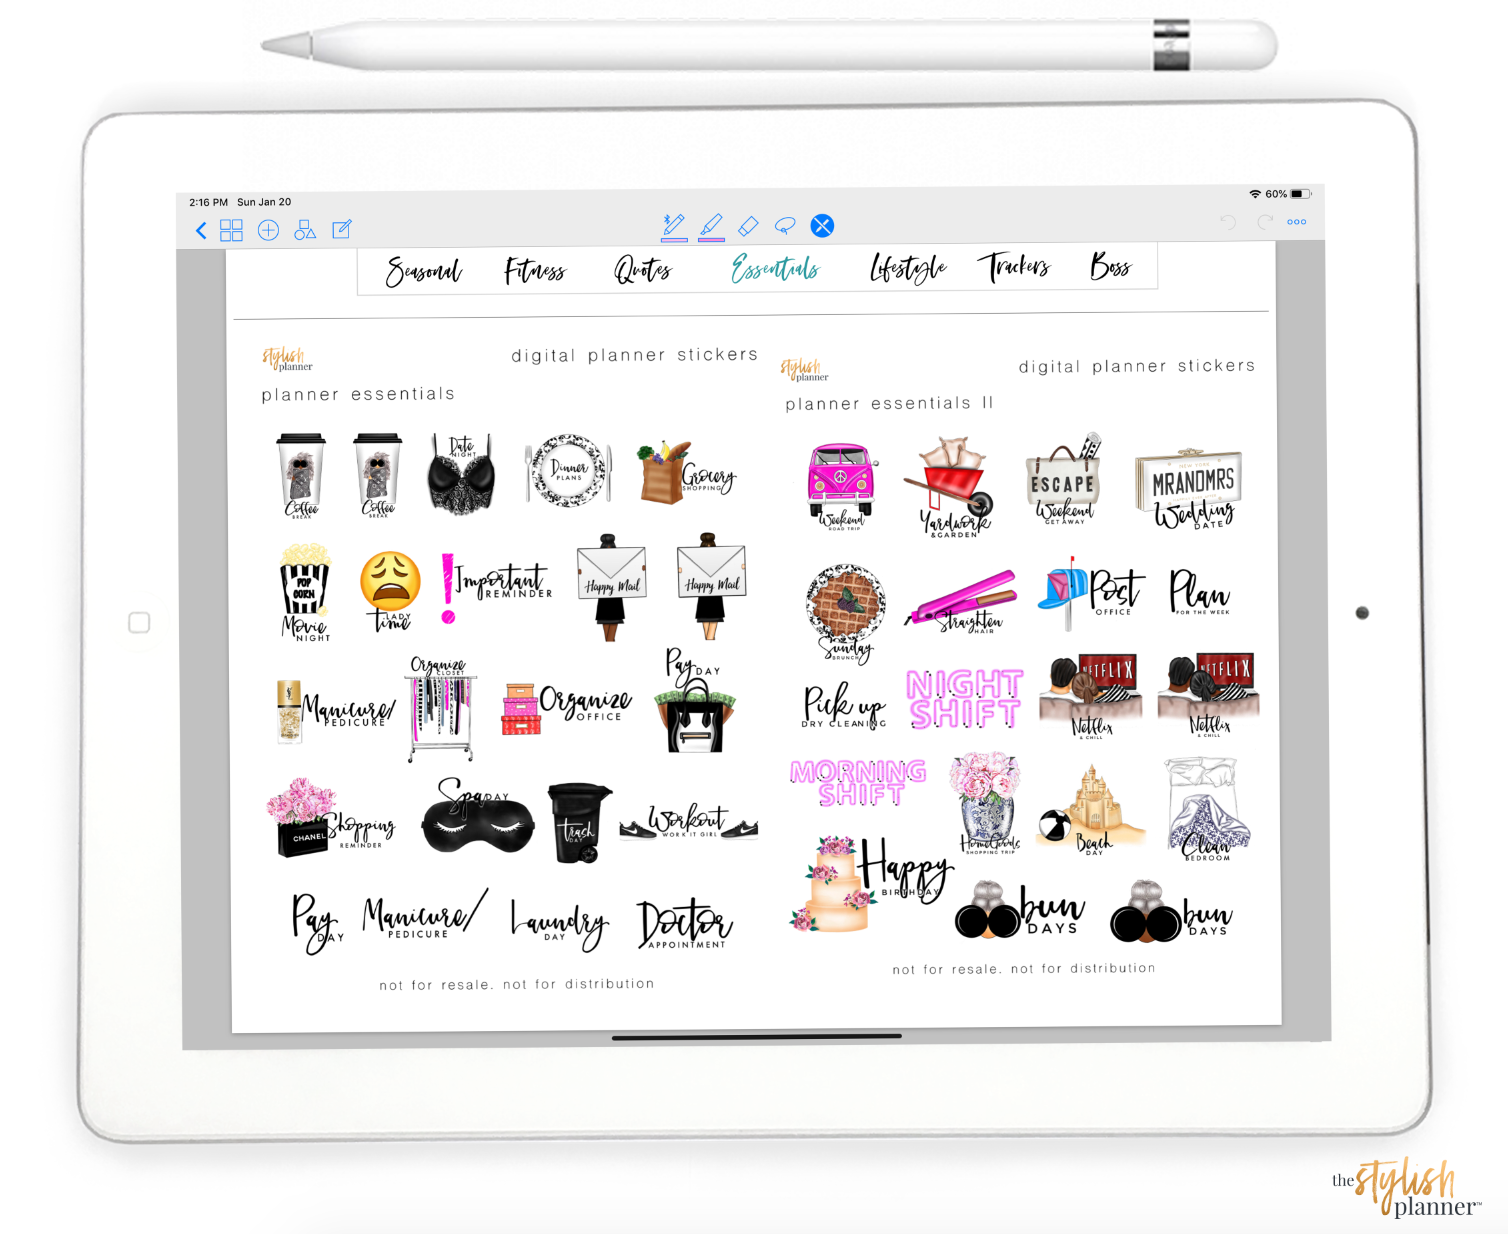 Stylish Planner and Stylish Gifts - Digital Sticker Book - Digital Planning